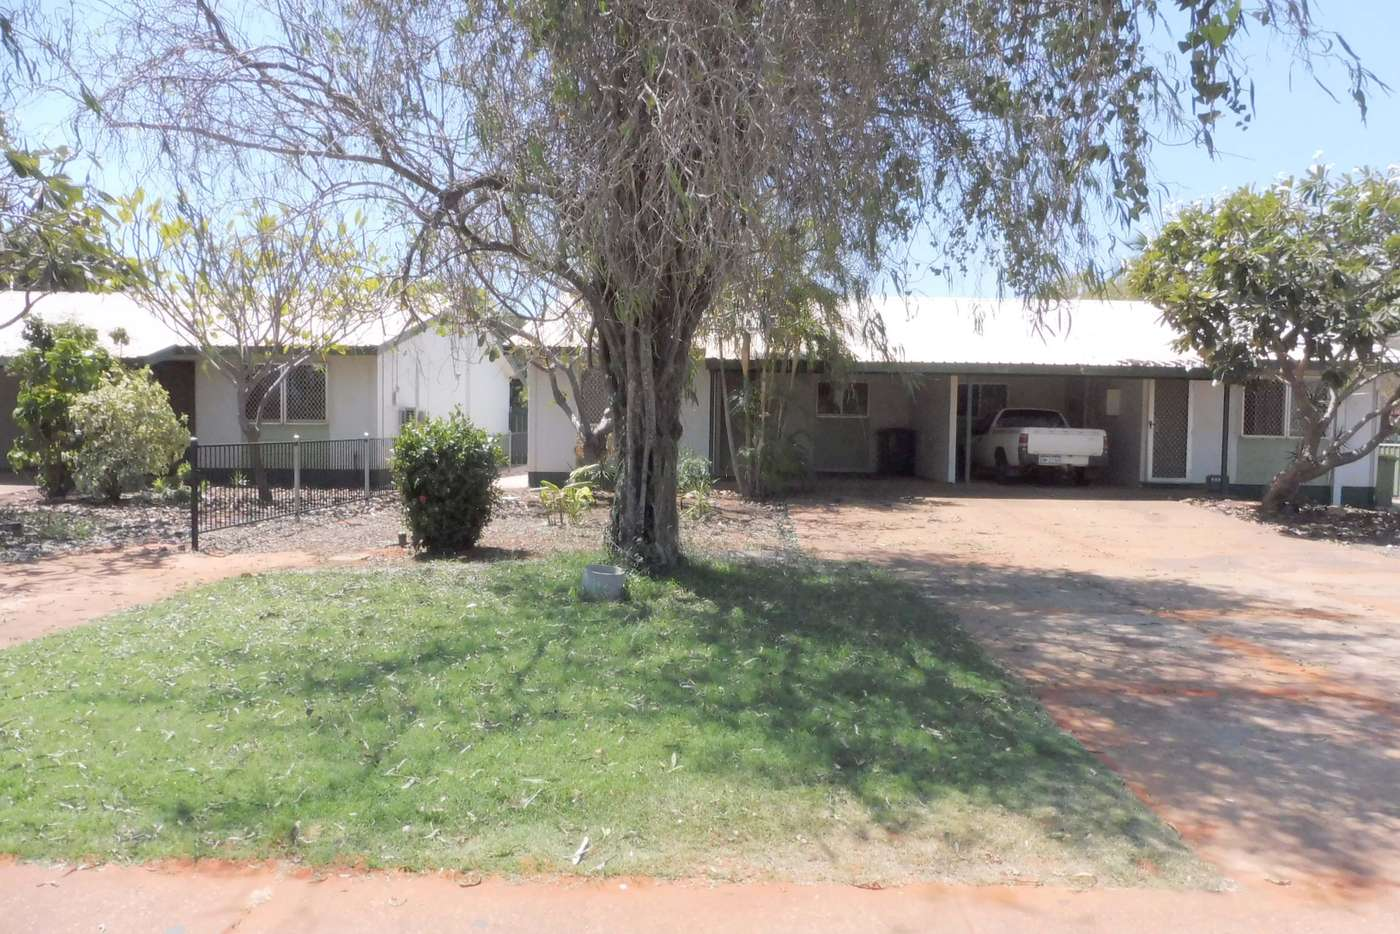 Main view of Homely house listing, 72B Guy Street, Broome WA 6725